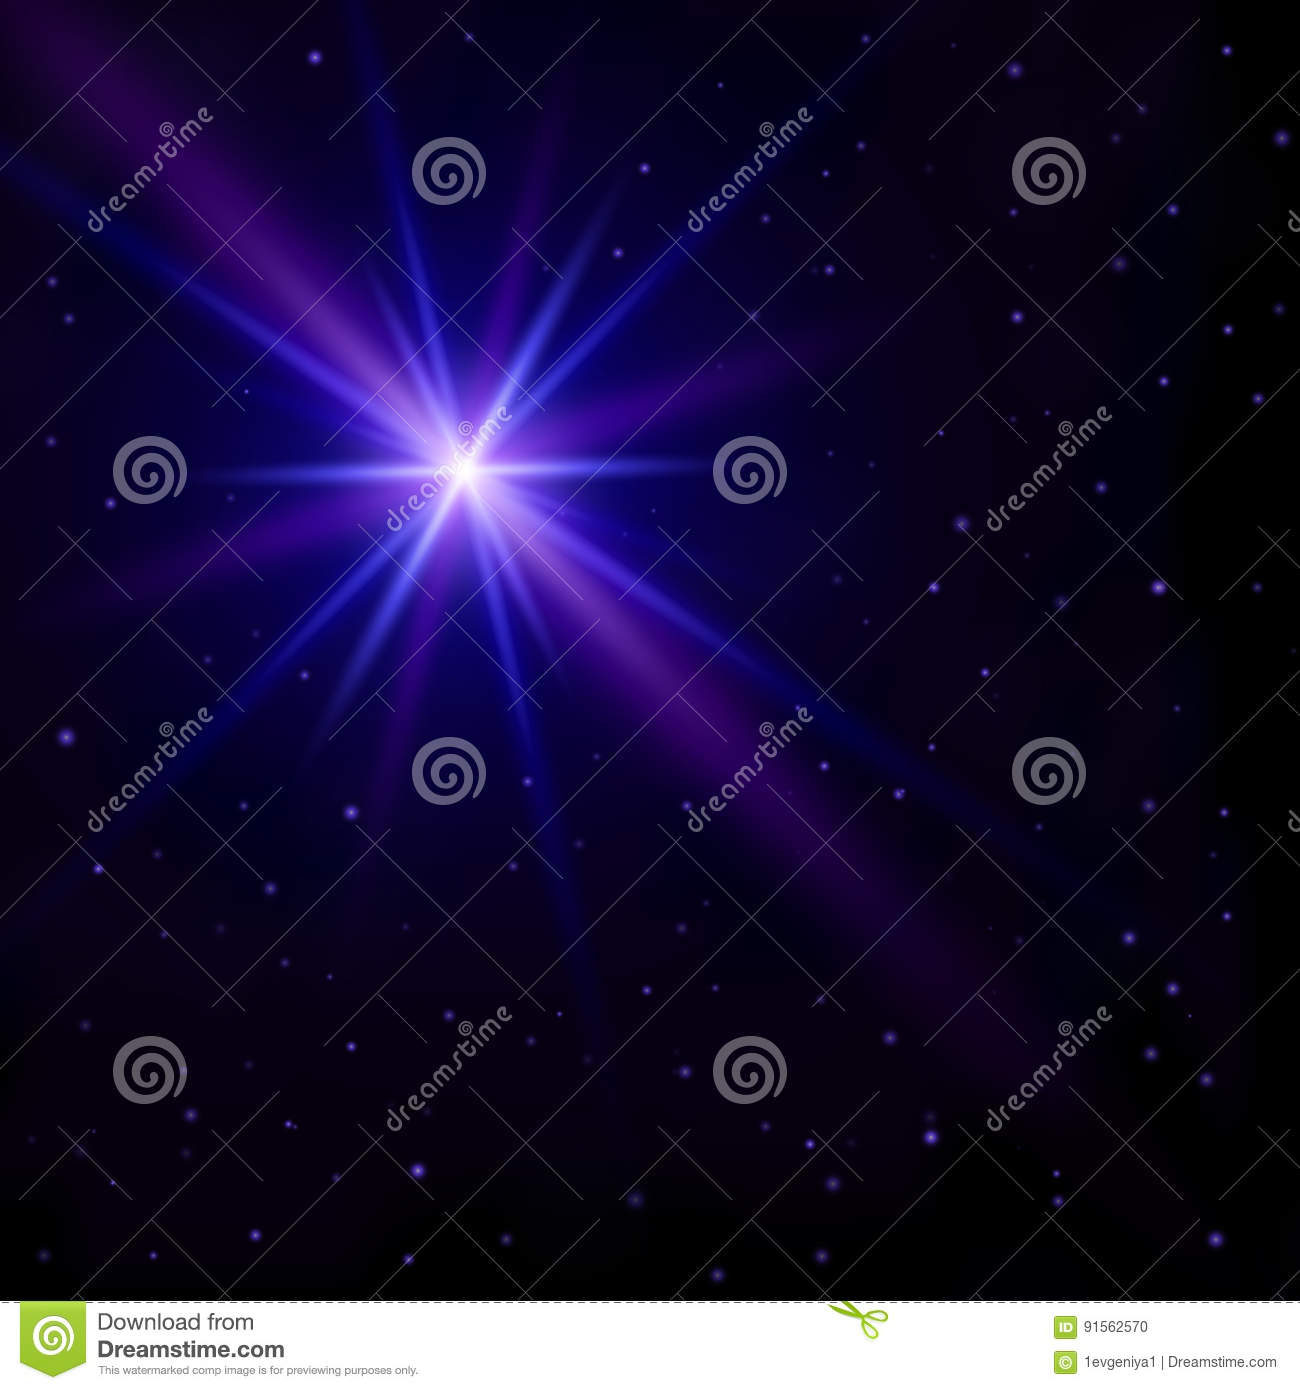 Beautiful abstract background. The night sky with many small stars and one big star flash with glowing blue and purple rays. Vecto